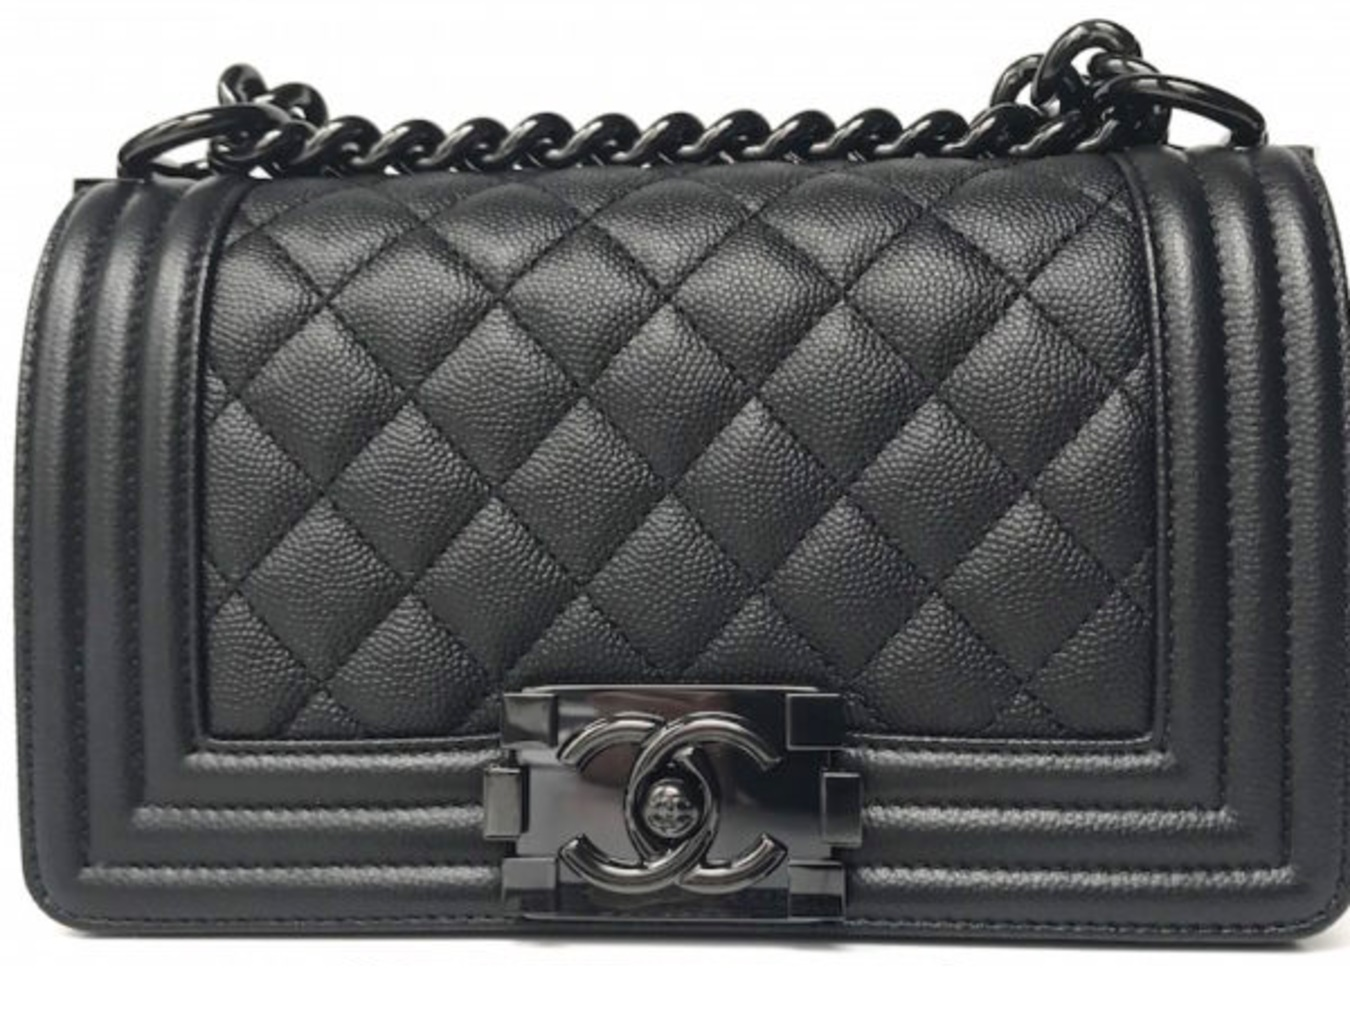 c2d33e574633 BNIB AUTHENTIC CHANEL 2017 Caviar Quilted Small Boy Flap So Black ...